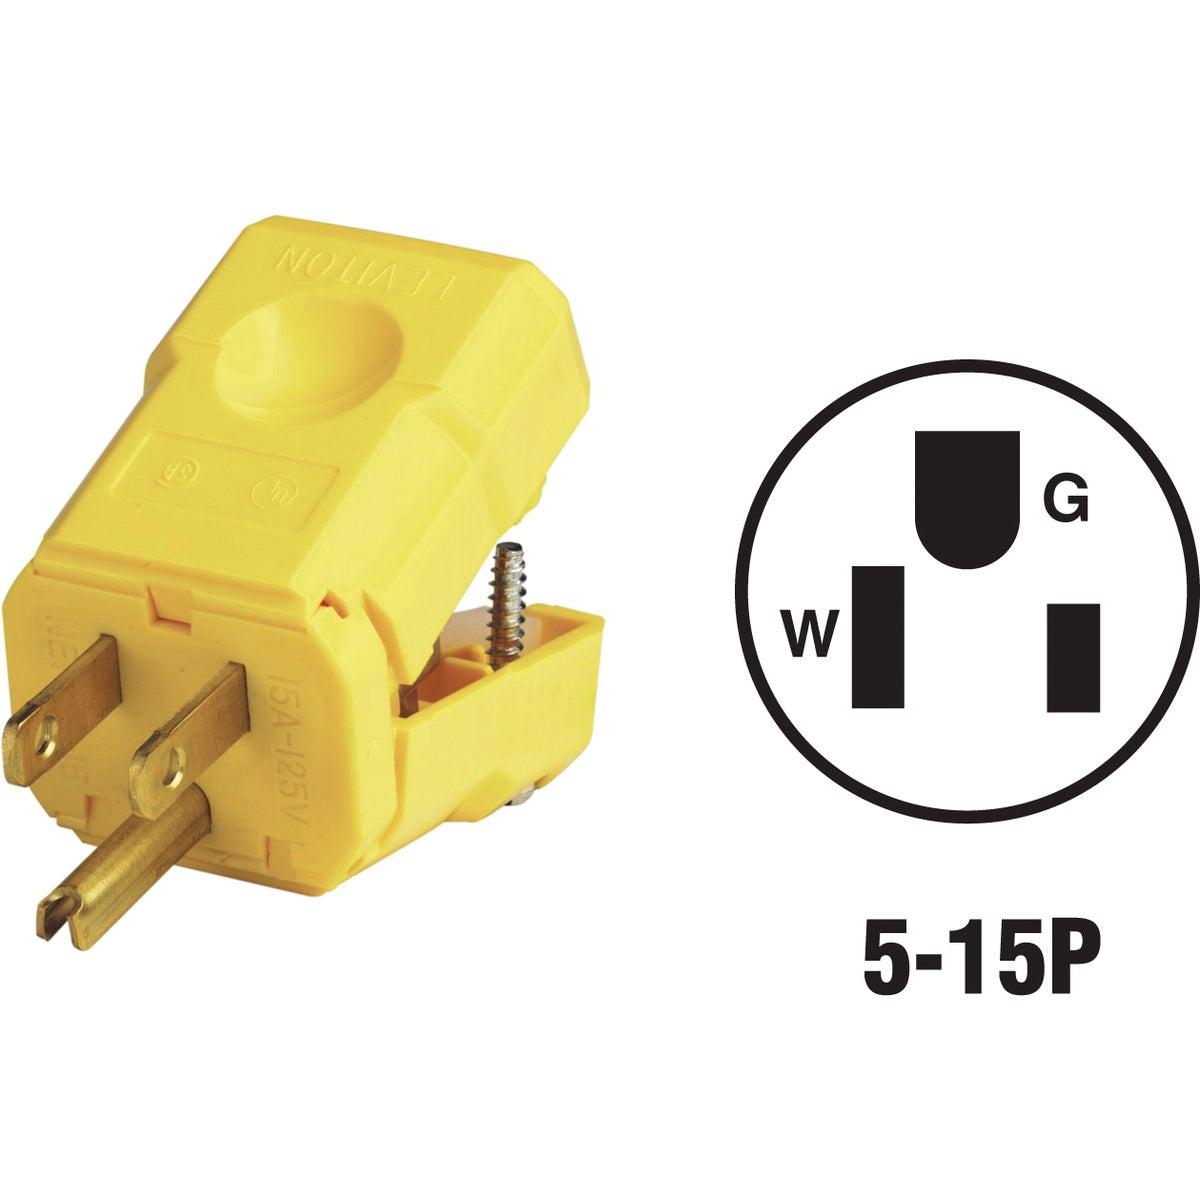 15A YEL NYLON CORD PLUG - 5256VY by Leviton Mfg Co